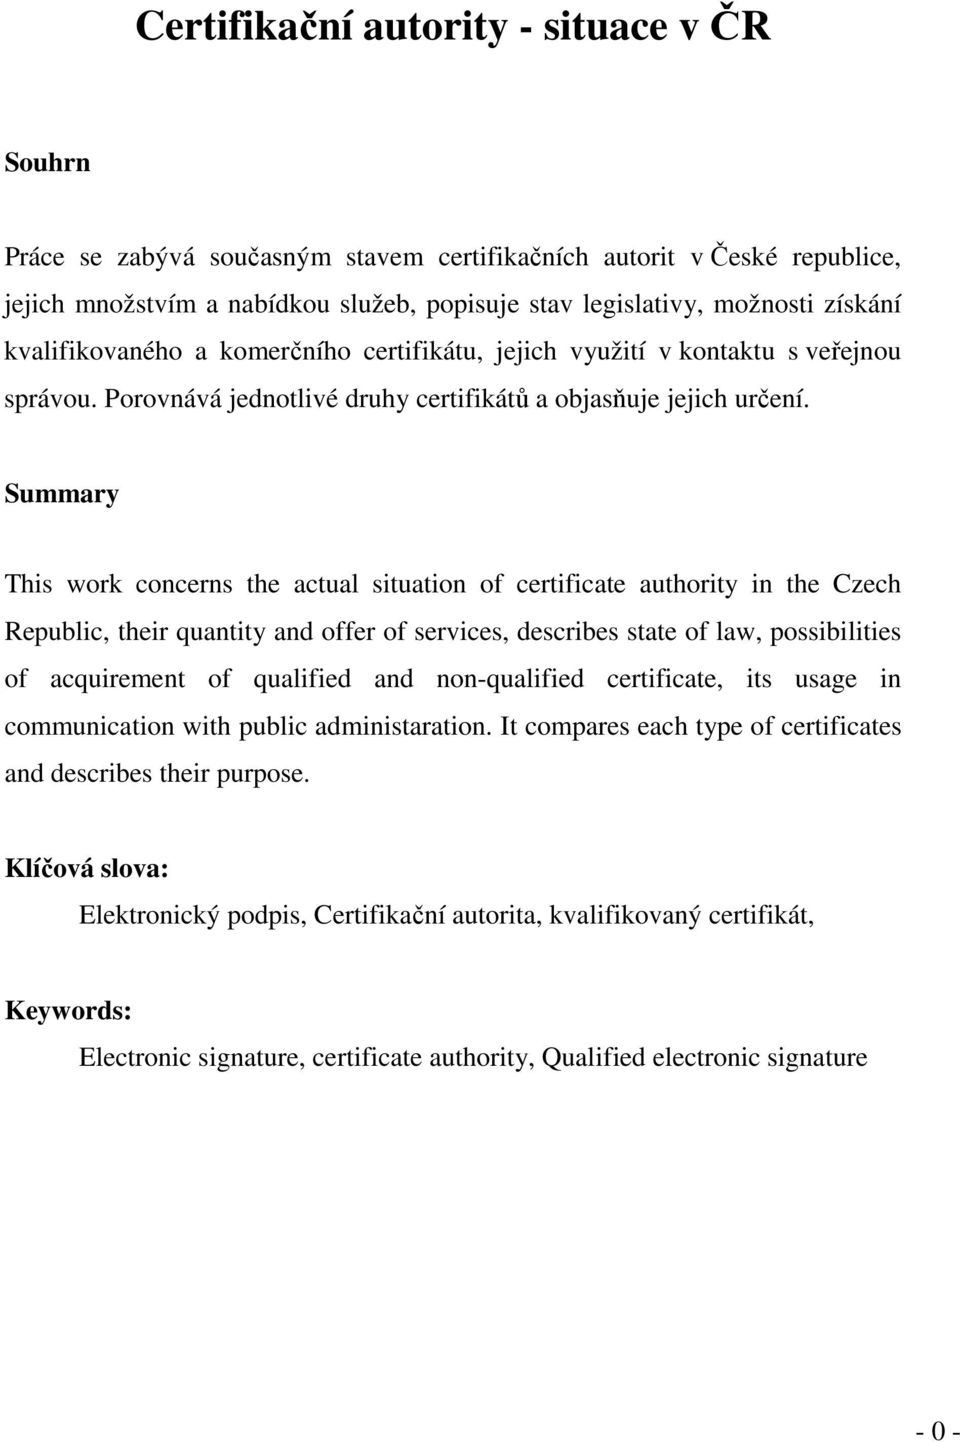 Summary This work concerns the actual situation of certificate authority in the Czech Republic, their quantity and offer of services, describes state of law, possibilities of acquirement of qualified